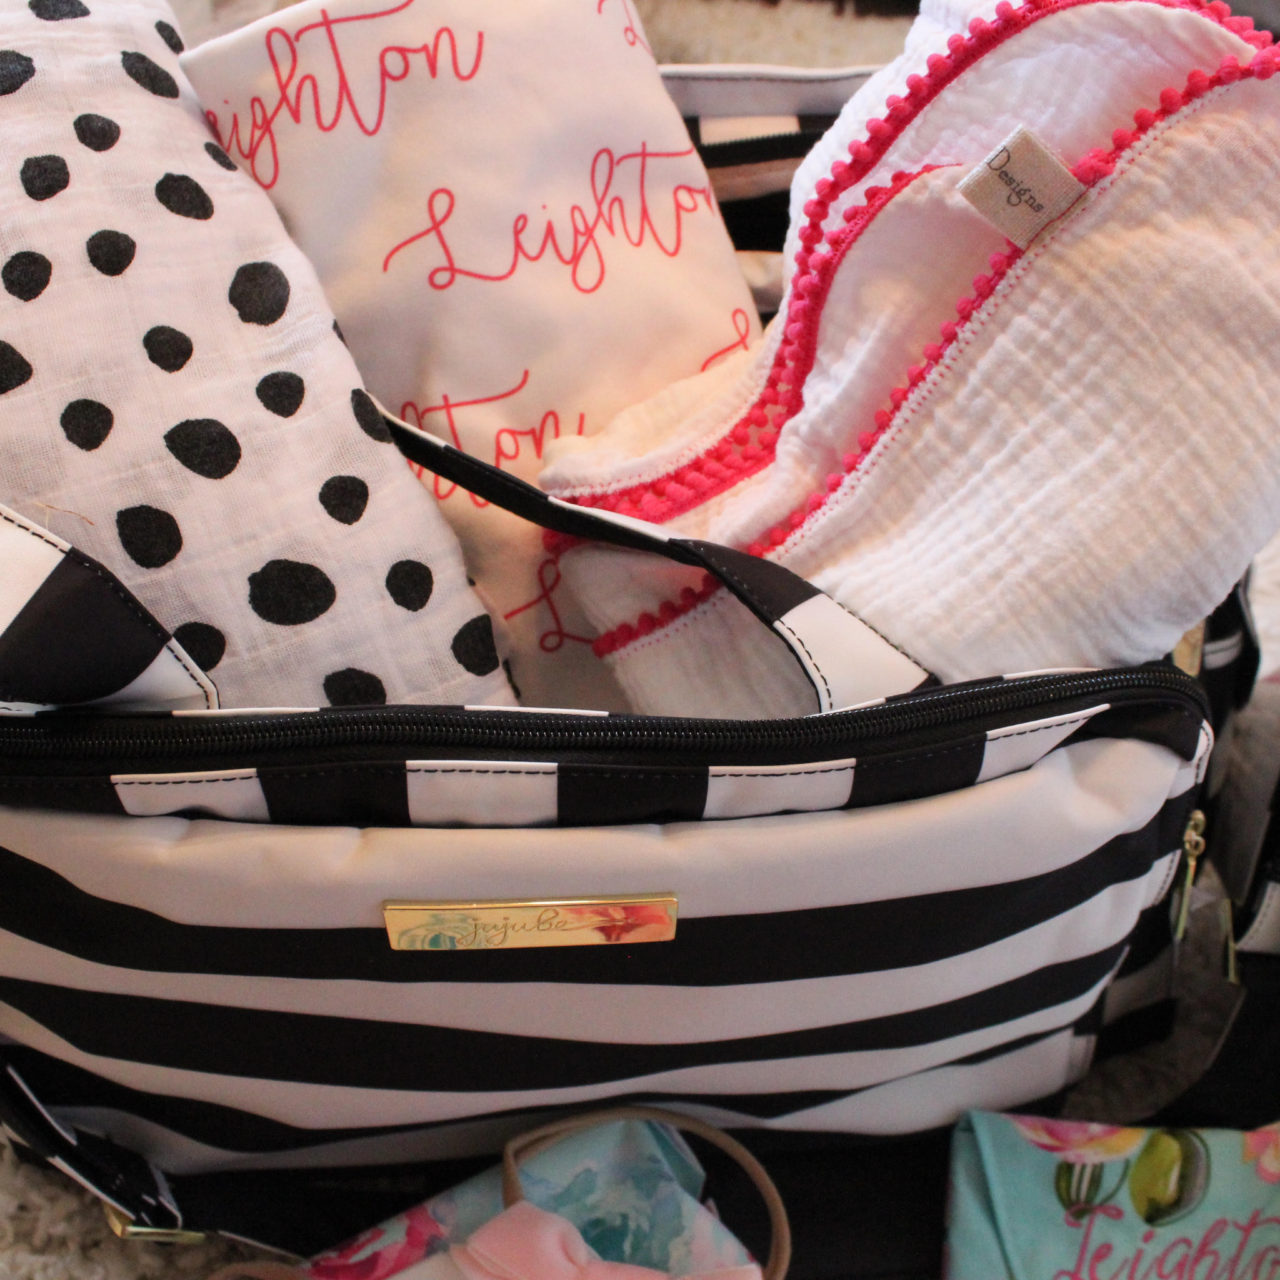 Hospital bag essentials: for the baby!